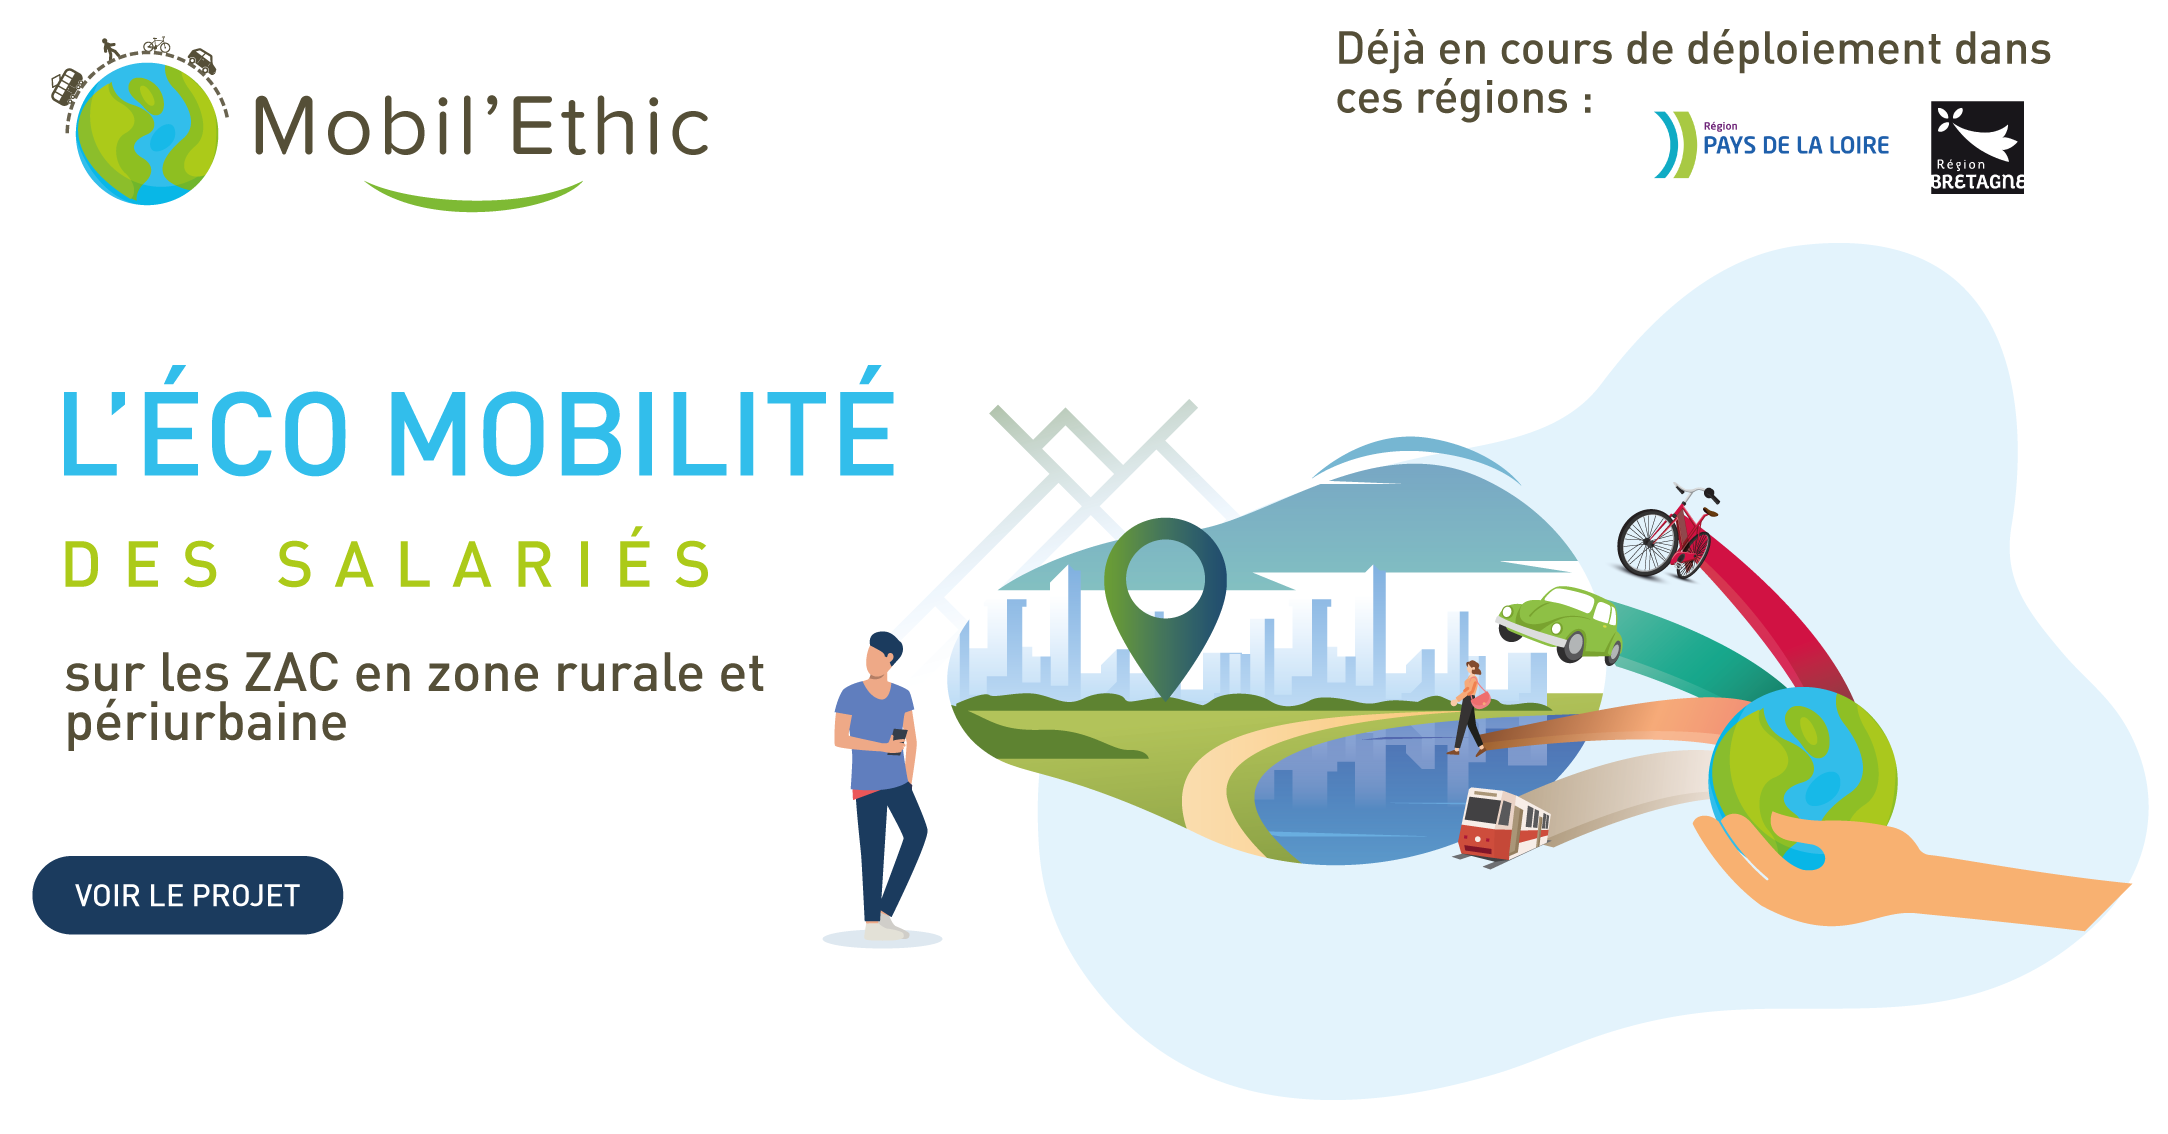 Projet-mobil'ethic